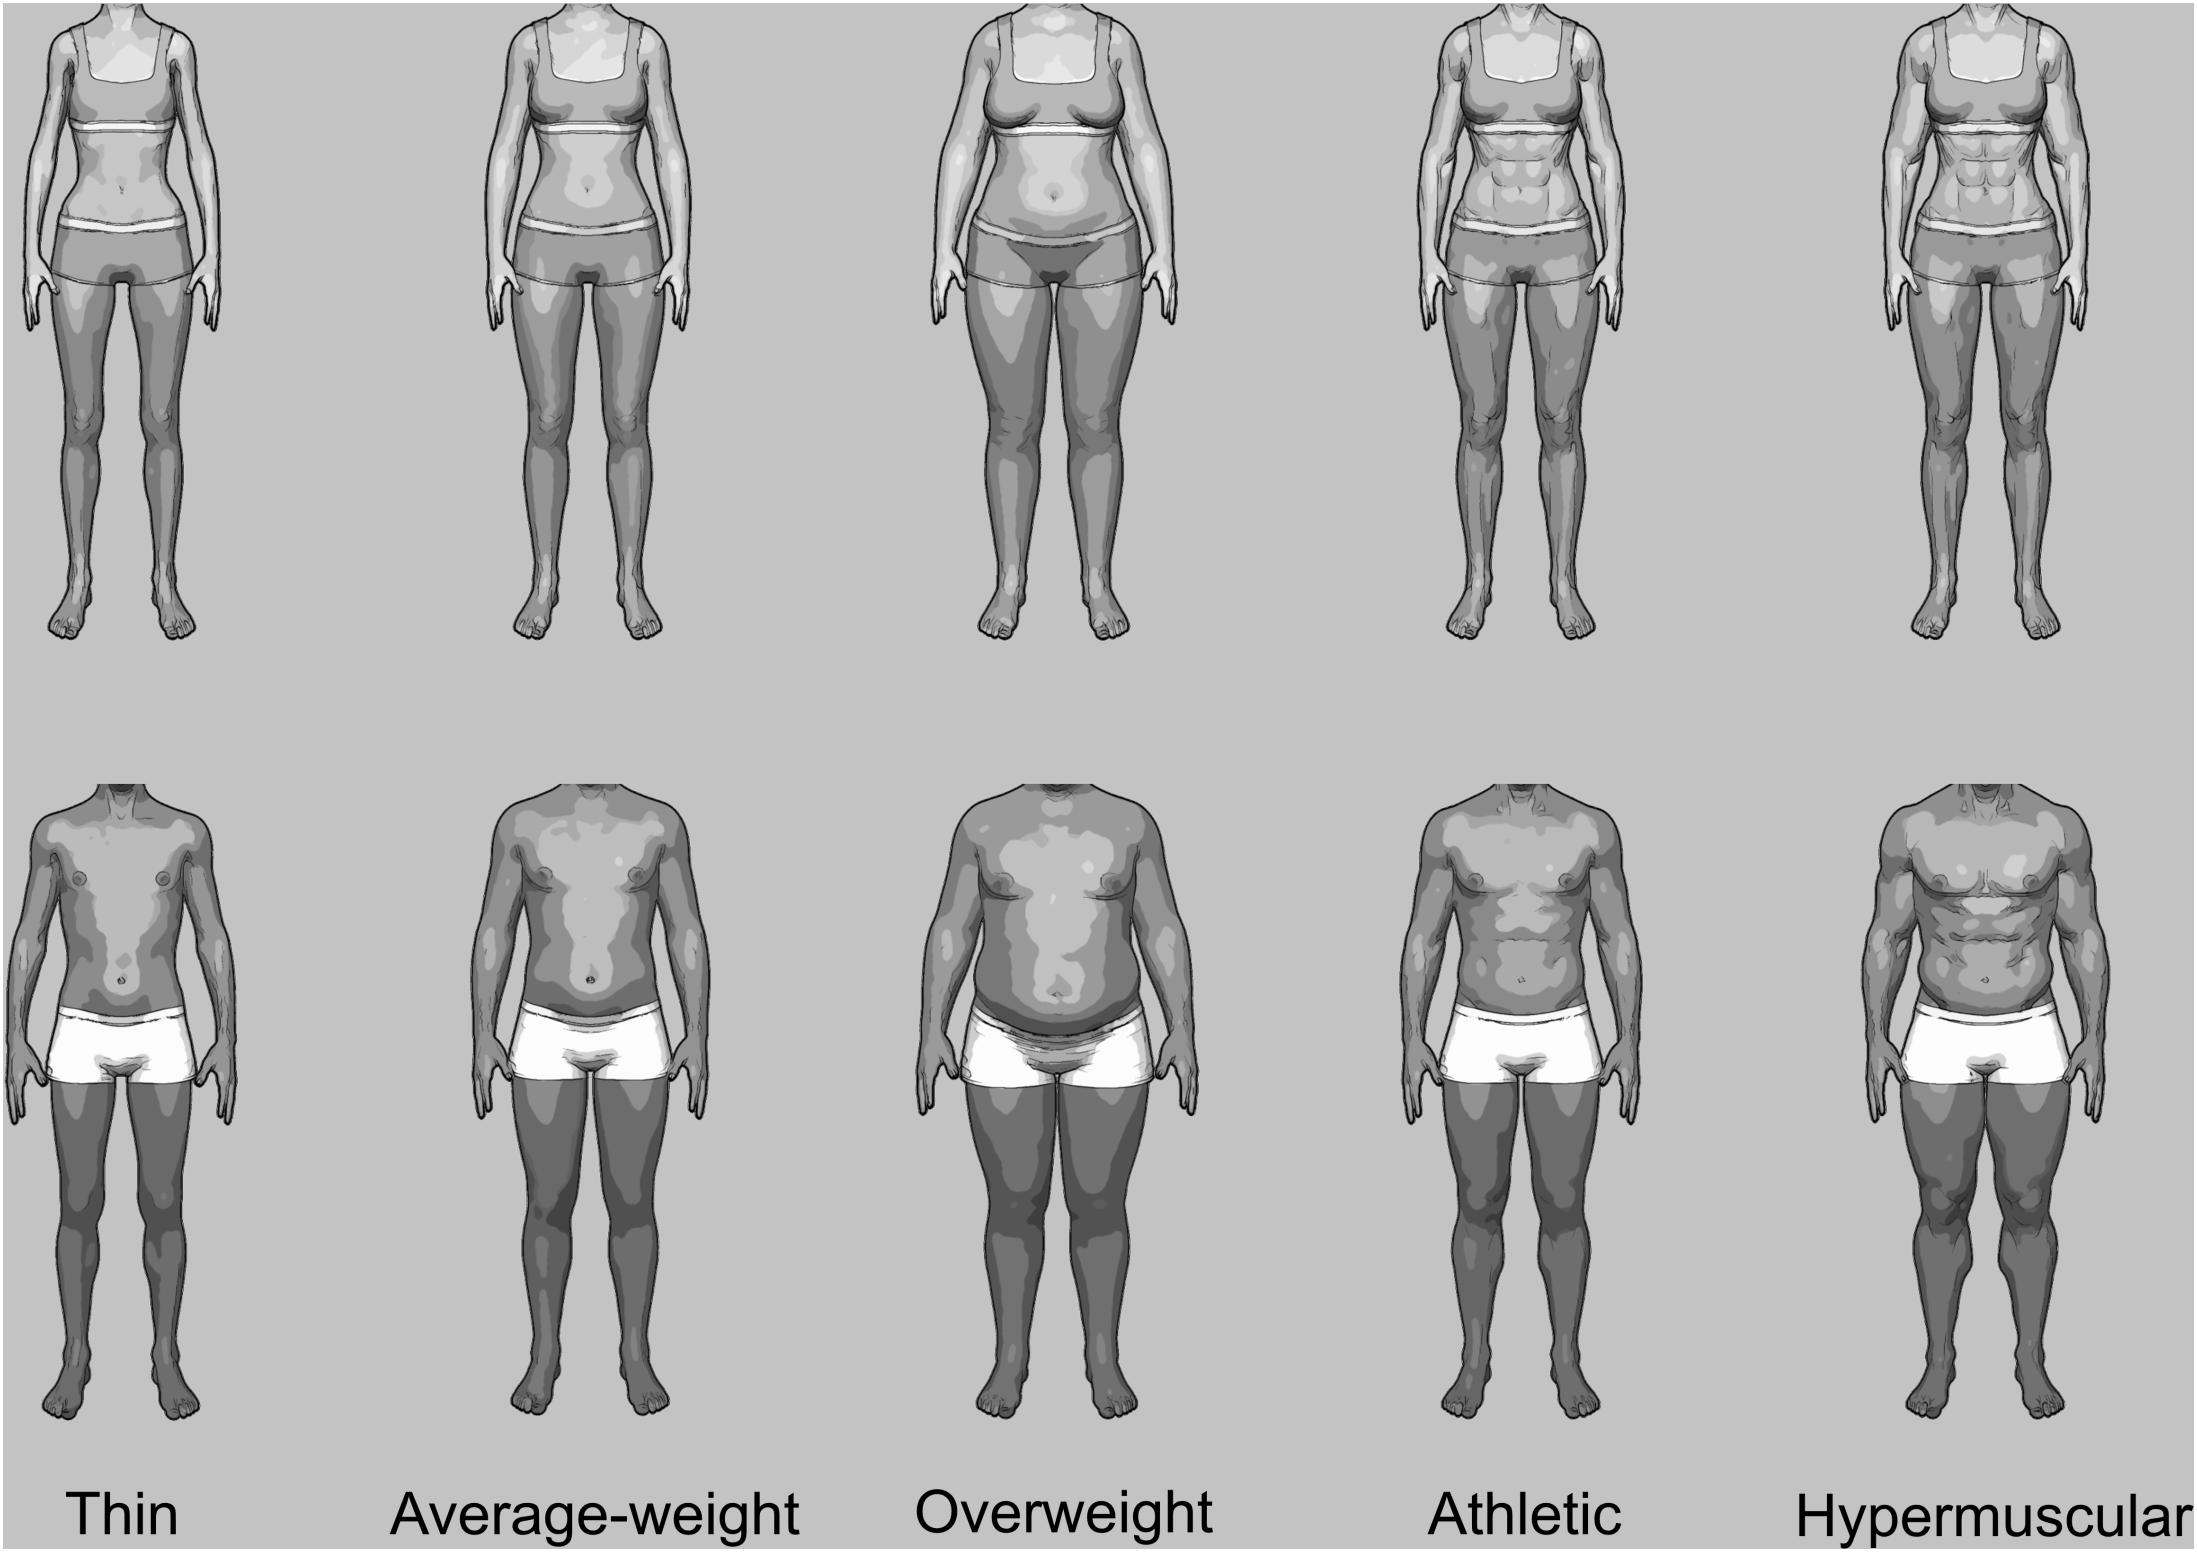 Frontiers | Gender Differences in Body Evaluation: Do Men